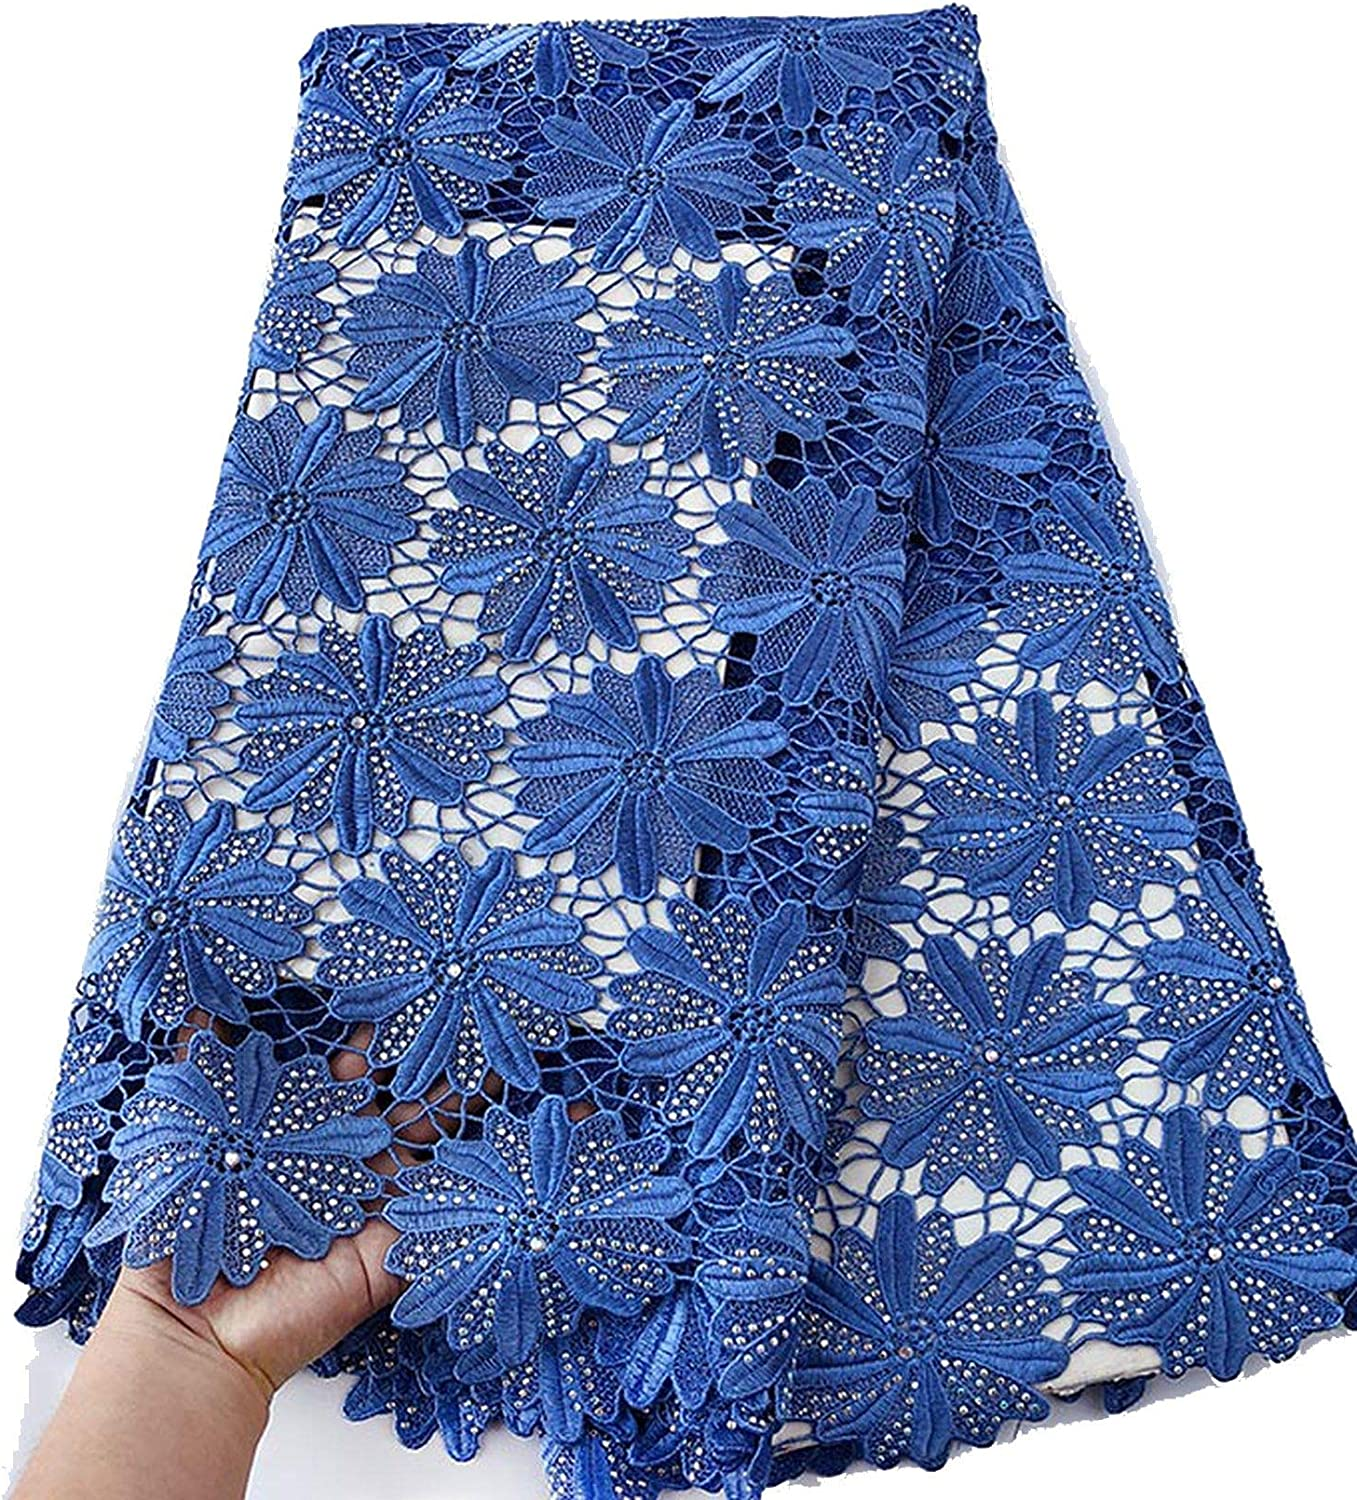 Big Heavy Pure Onion African Guipure Lace Very Neat Embroidery Nigerian Cord Lace Fabric with Strong Stones 5 Yards,Onion